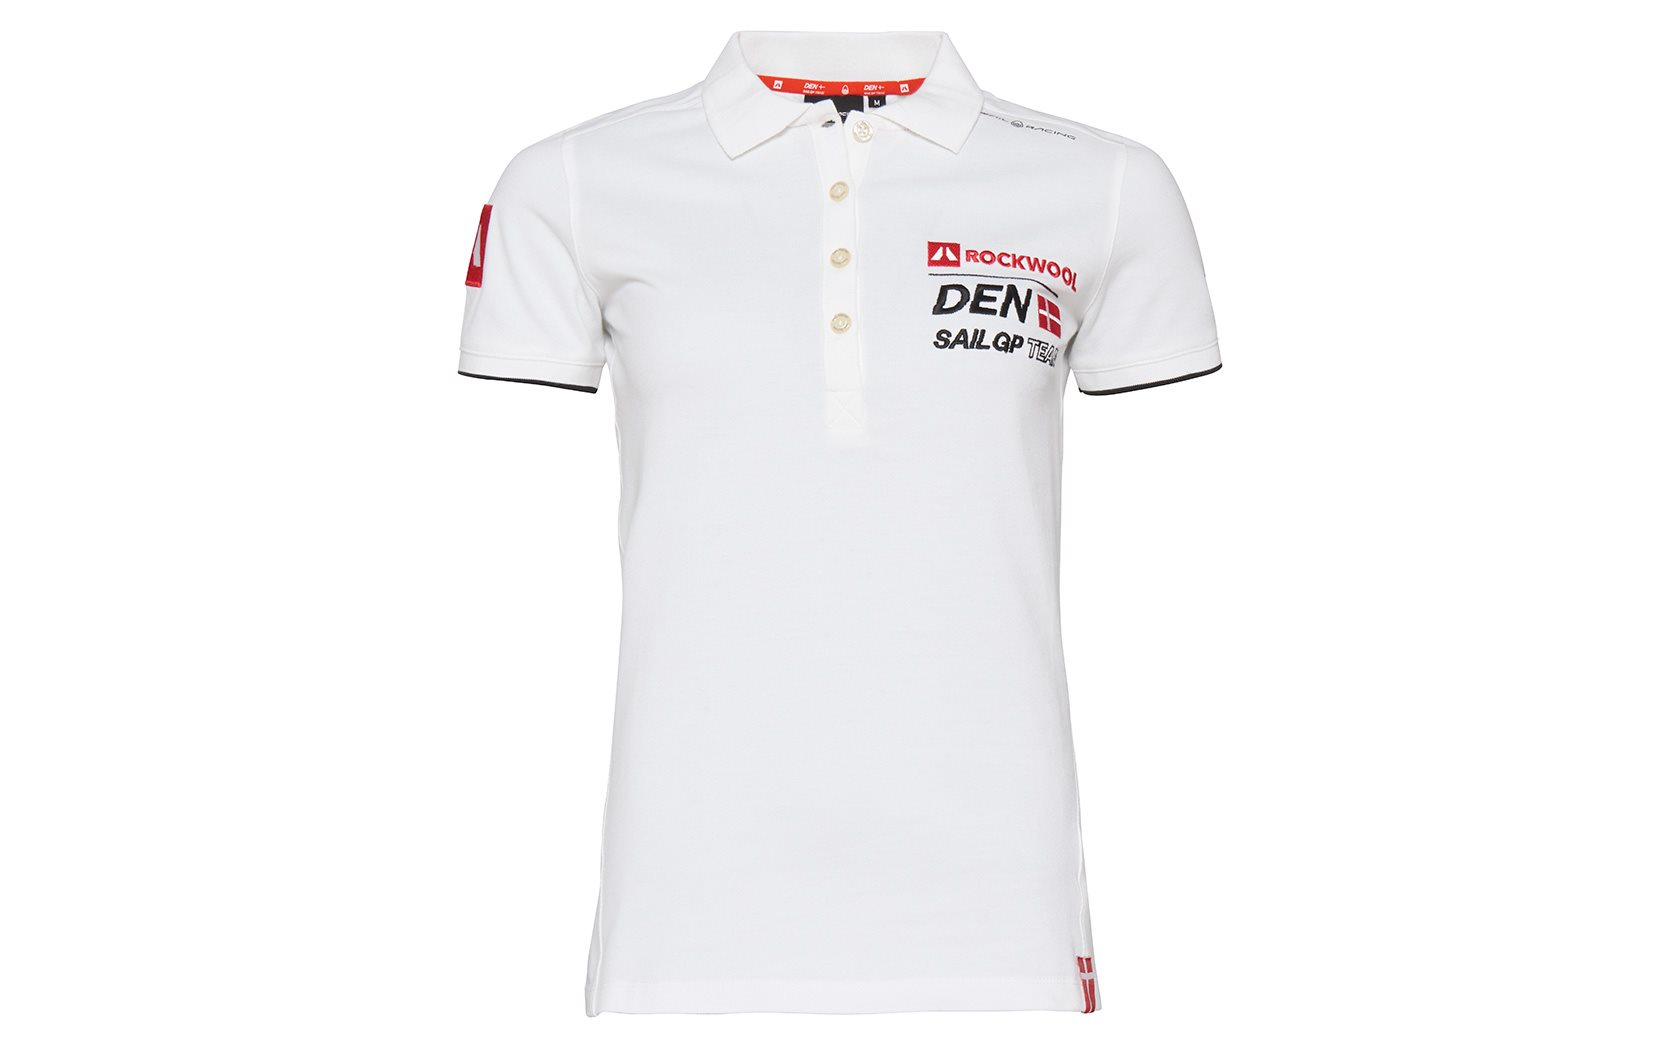 W DENMARK SAILGP POLO